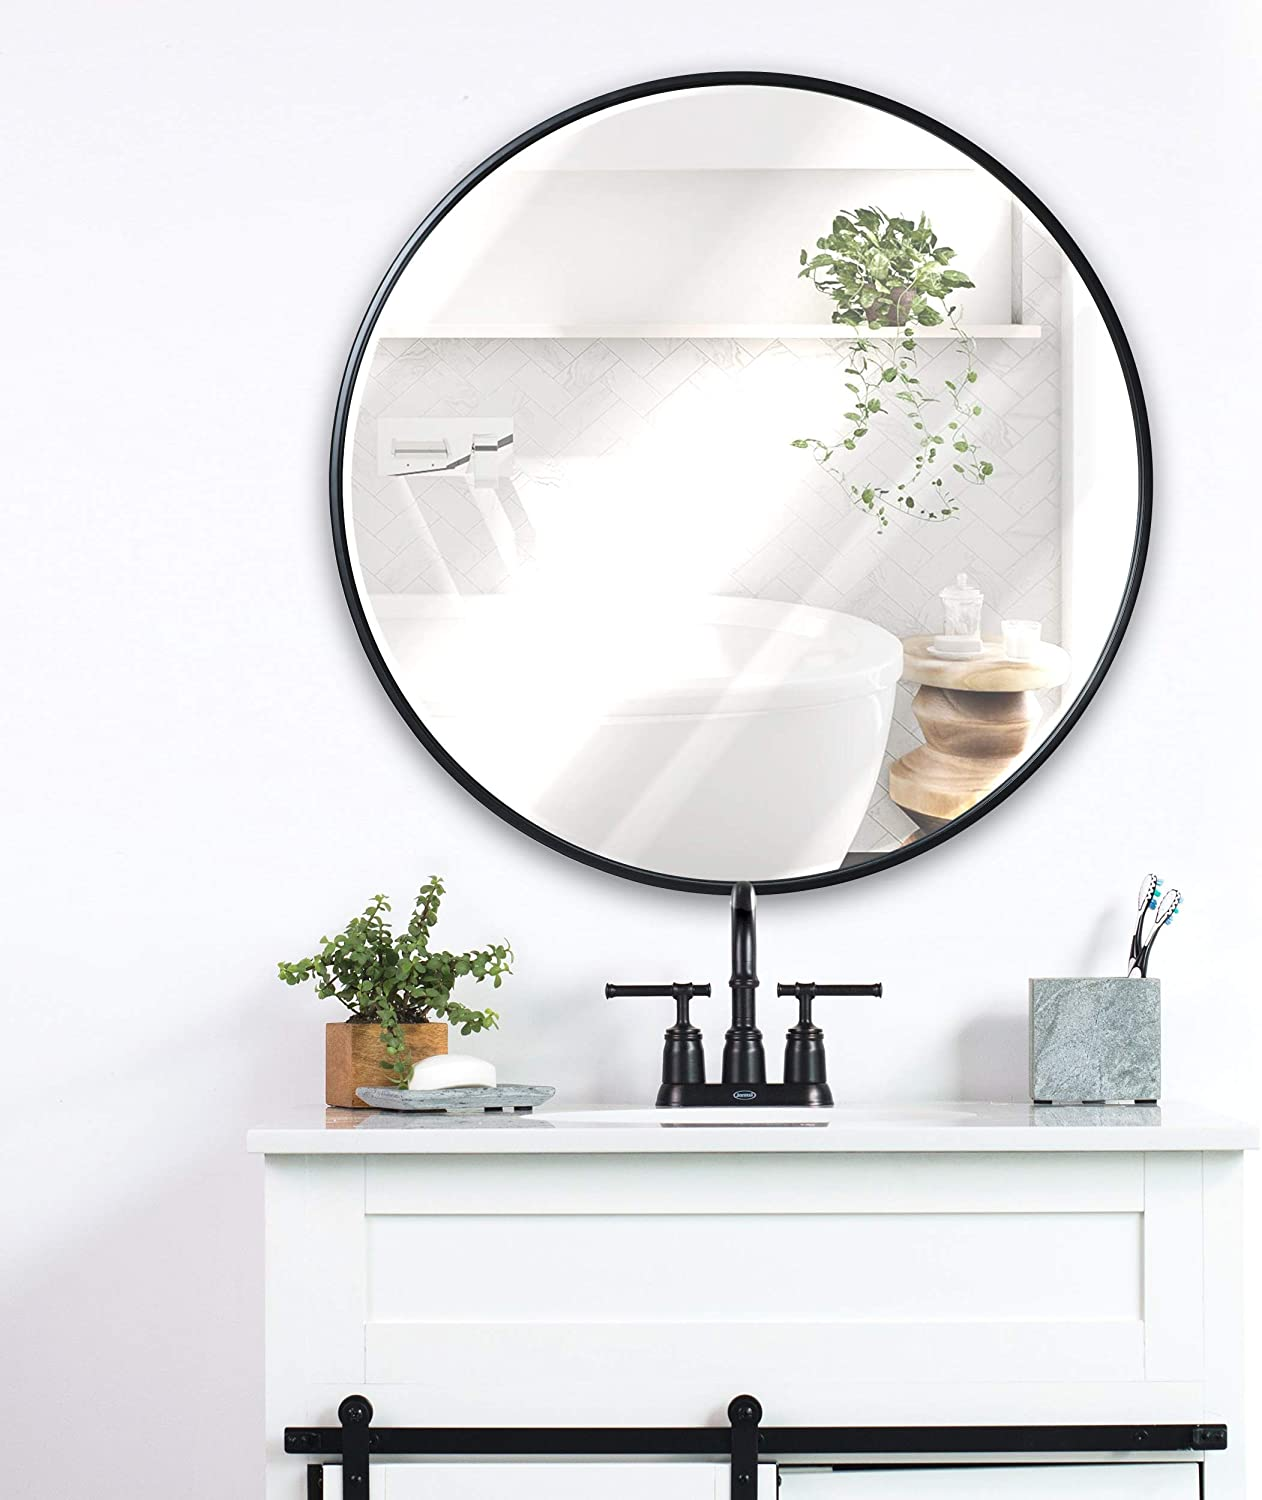 Black Round Wall Mirror - 24 Inch Large Round Mirror, Rustic Accent Mirror For Bathroom, Entry, Dining Room, & Living Room. Metal Black Round Mirror For Wall, Vanity Mirror Large Circle Wall Mirror: Home & Kitchen